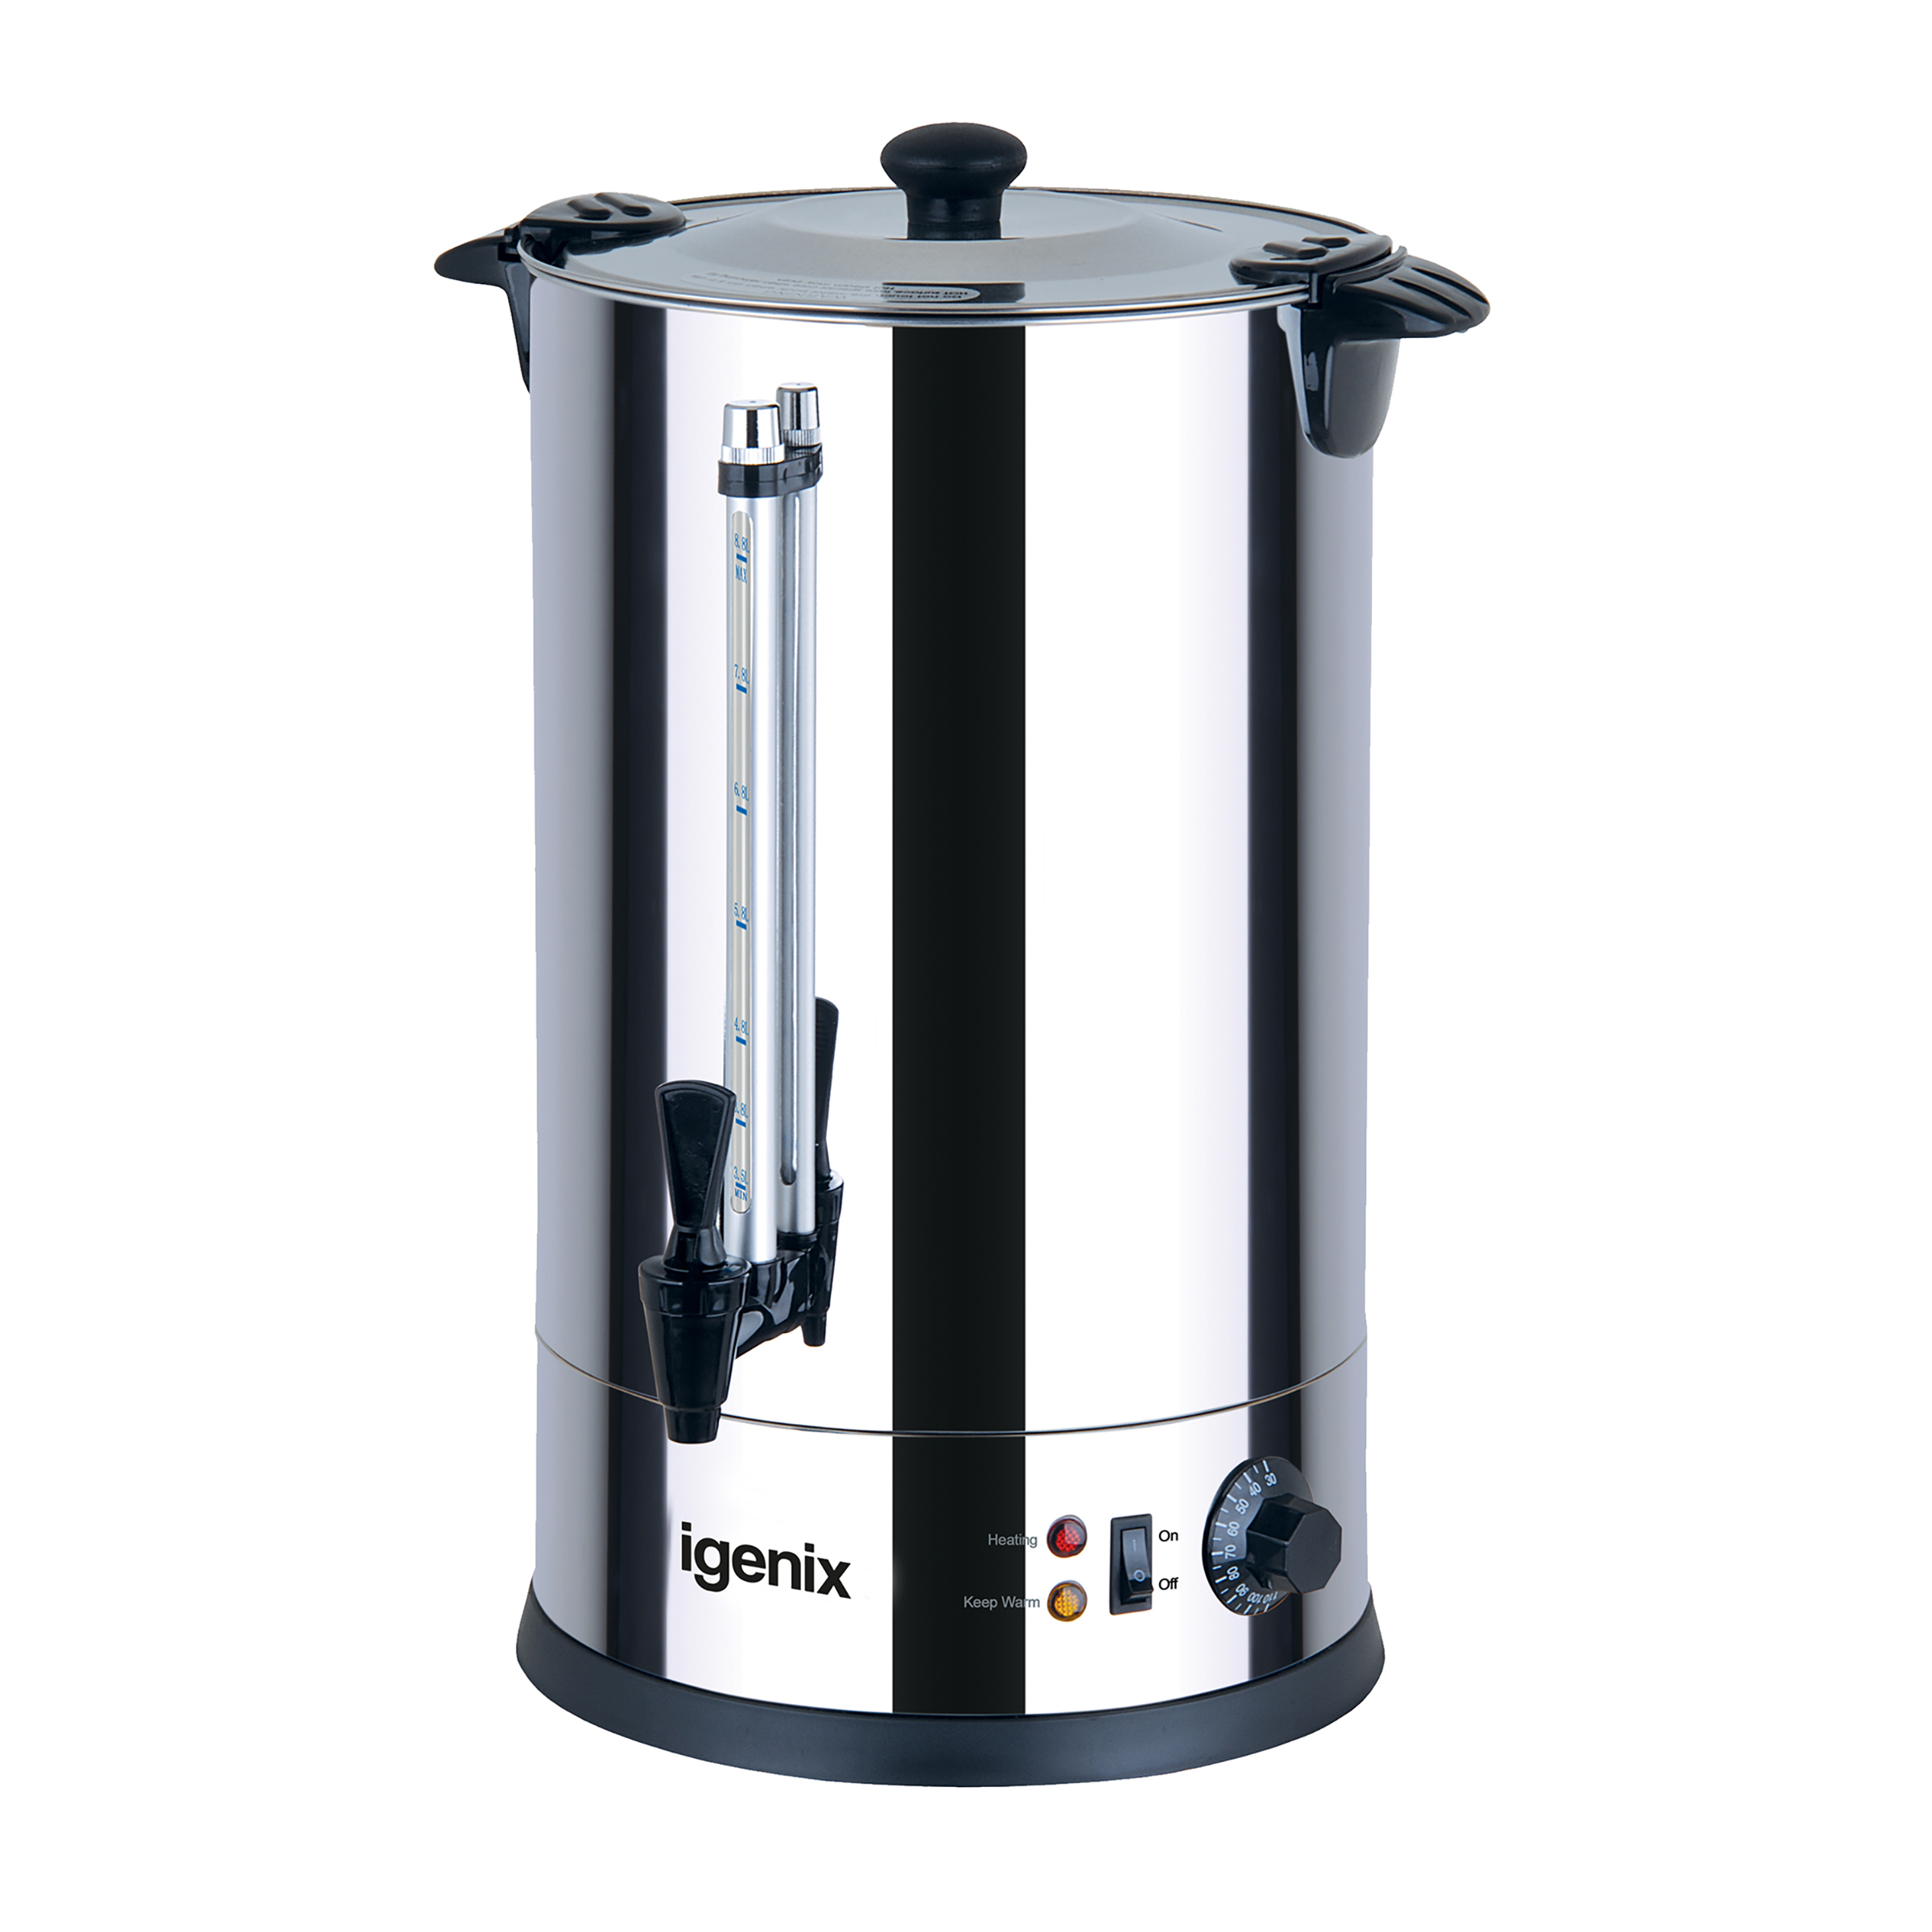 Flasks / Jugs / Urns Igenix Catering Urn Locking Lid Water Gauge 1600W 18 Litre Stainless Steel Ref IG4018